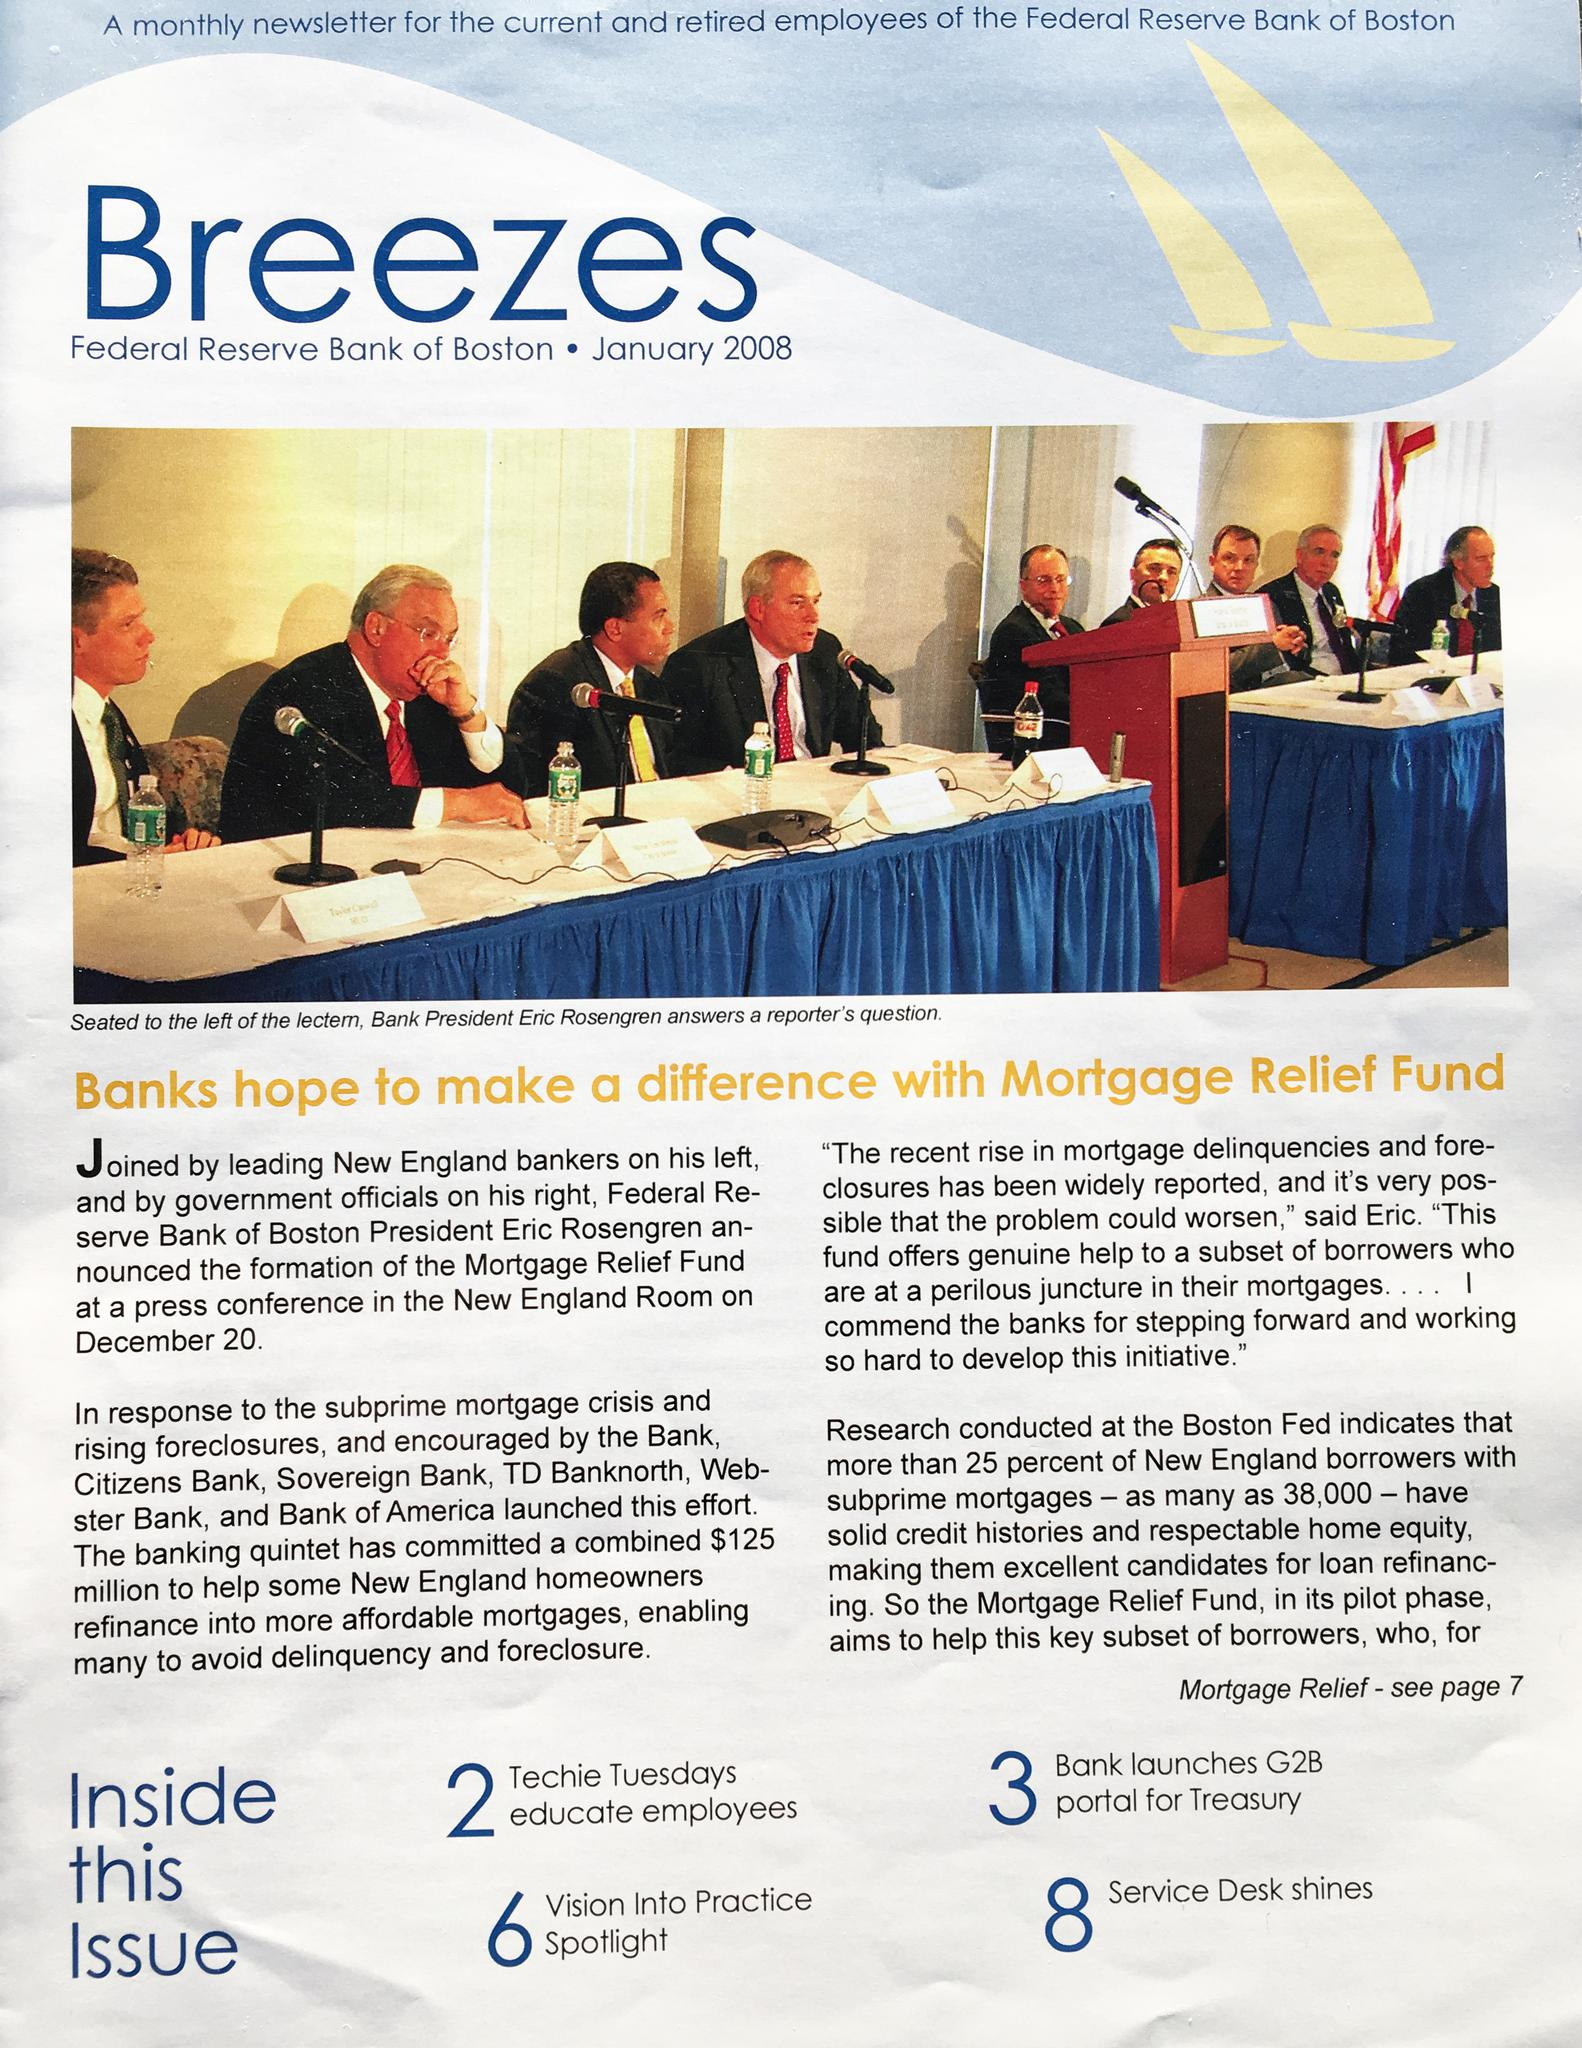 Breezes (Federal Reserve Bank of Boston newsletter for staff and retirees) January 2008